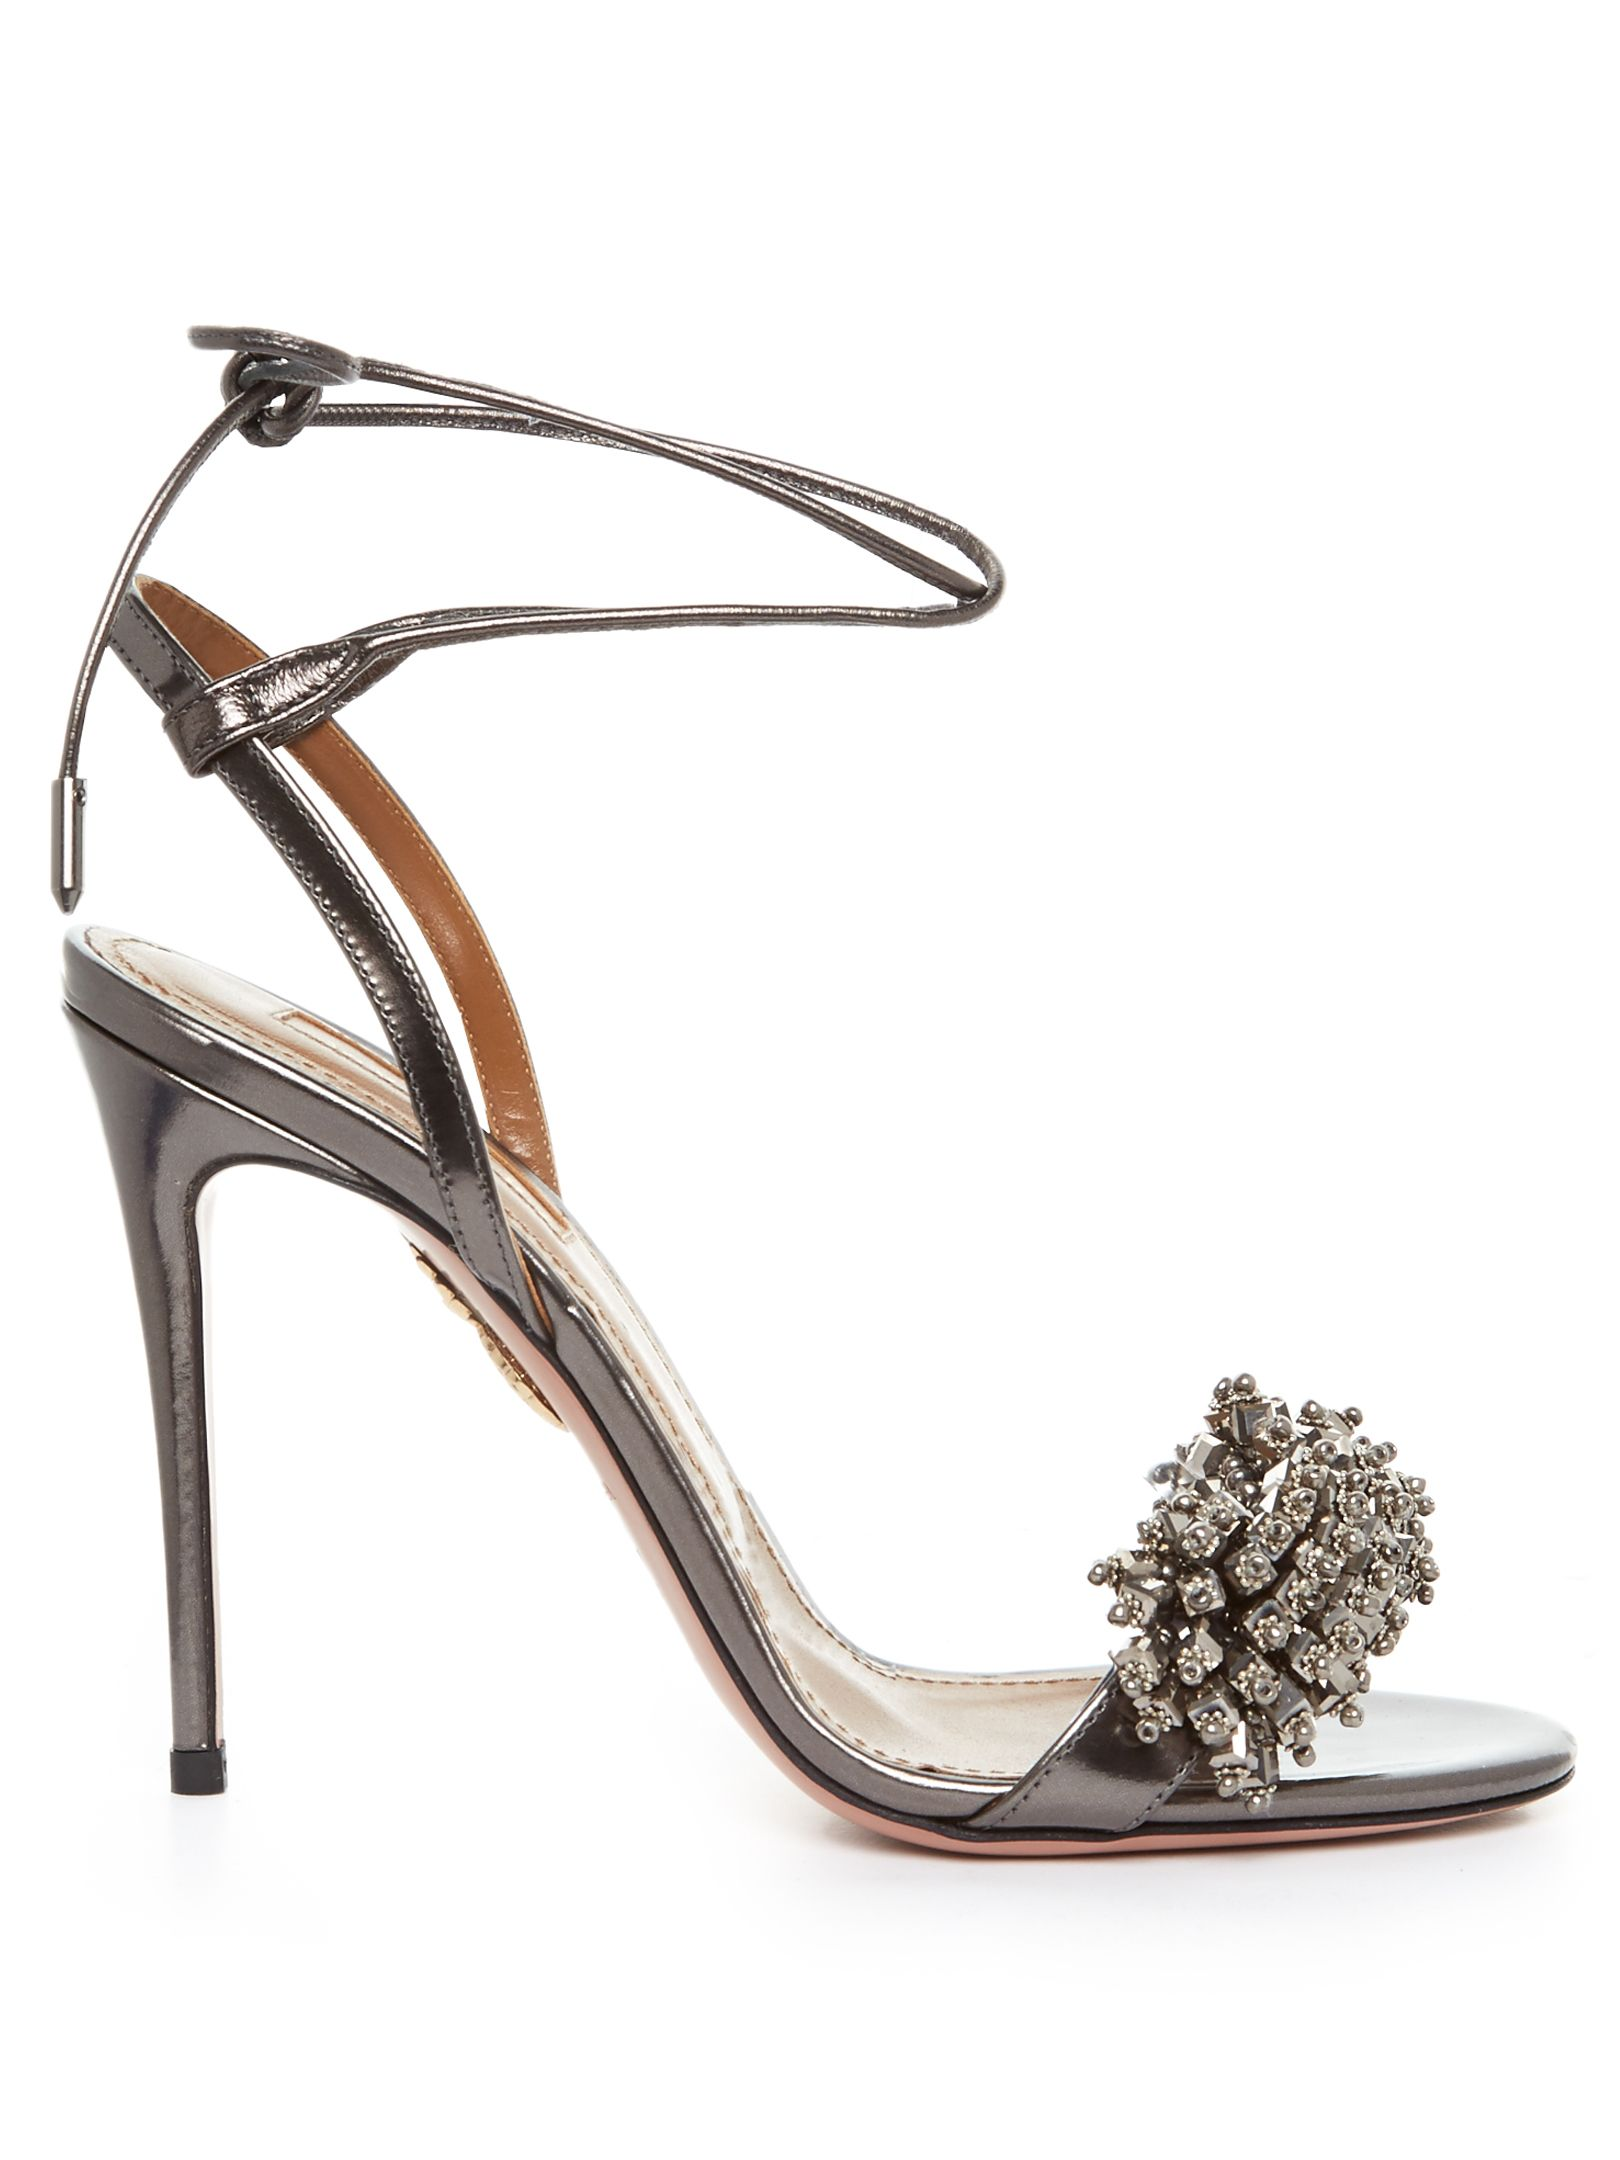 Aquazzura Embellished Leather Sandals sneakernews for sale view cheap online original cheap price YLlt8